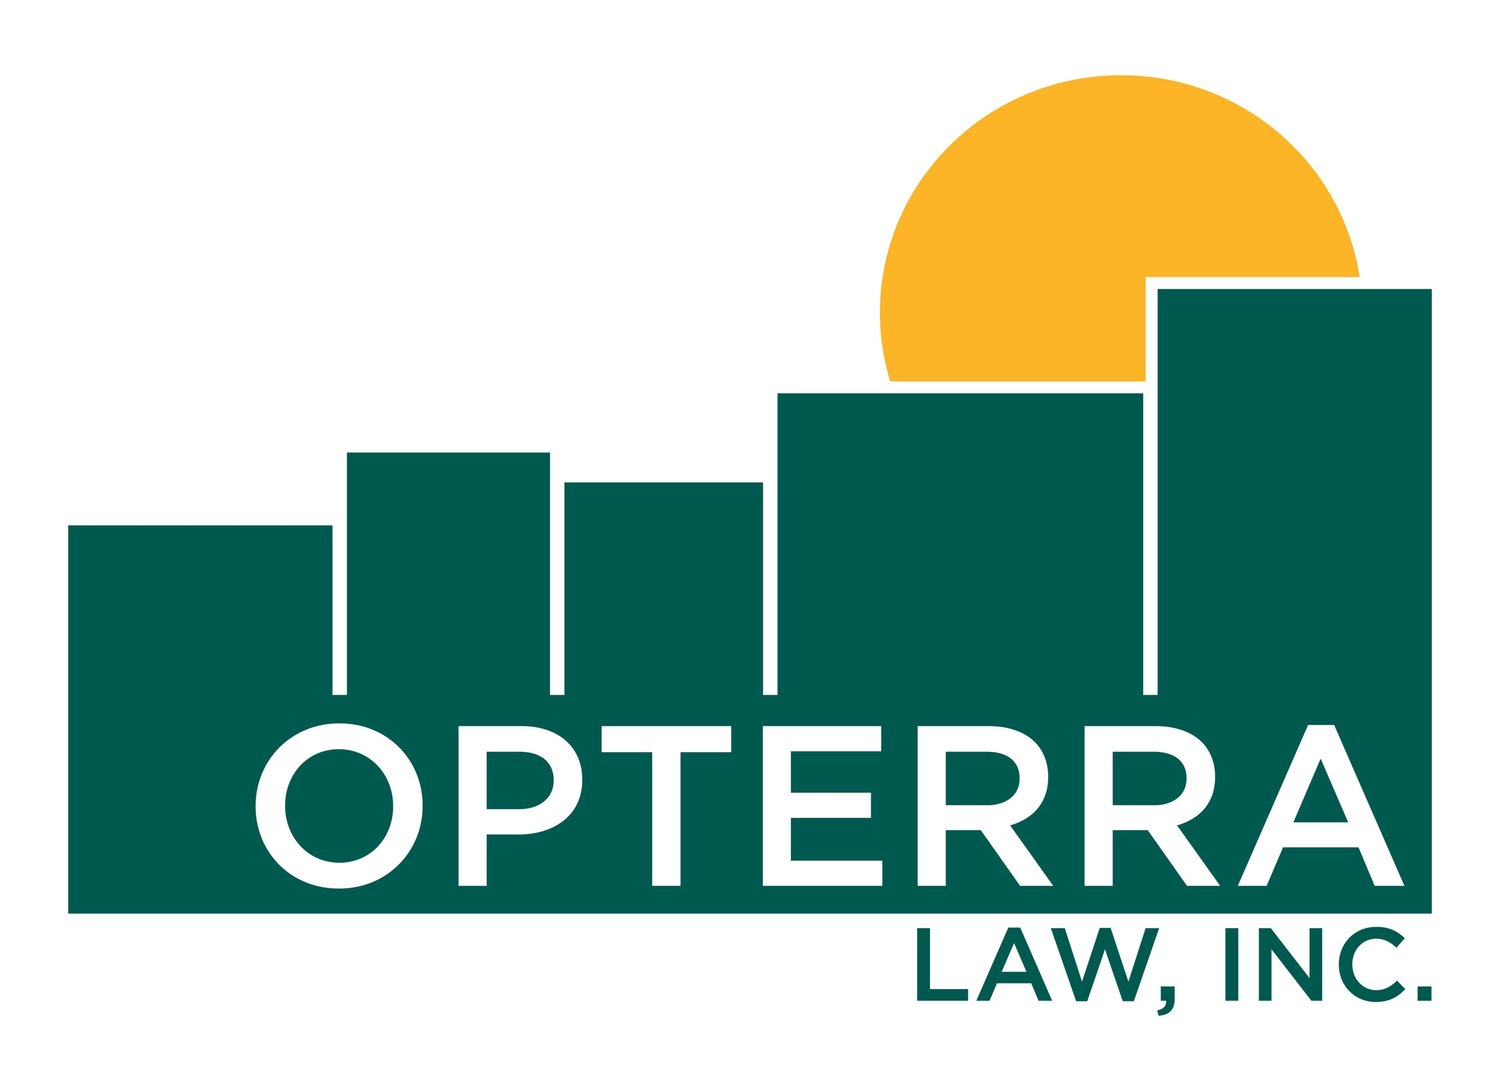 Opterra Law, Inc.